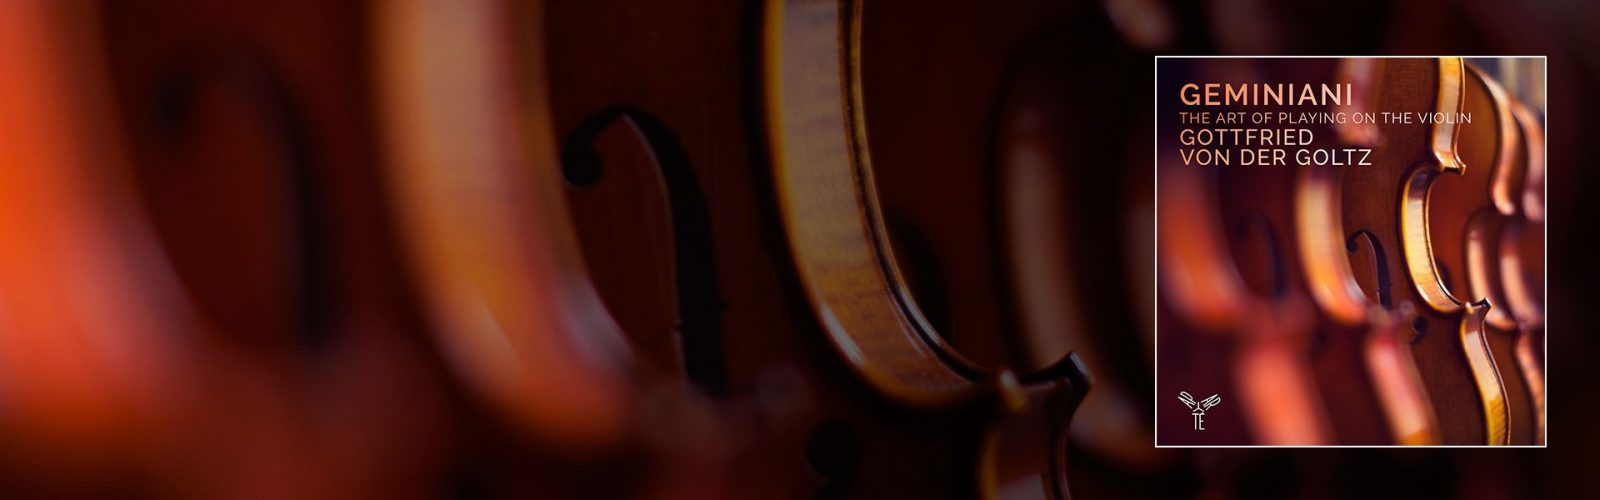 Geminiani – The Art of Playing on The Violin